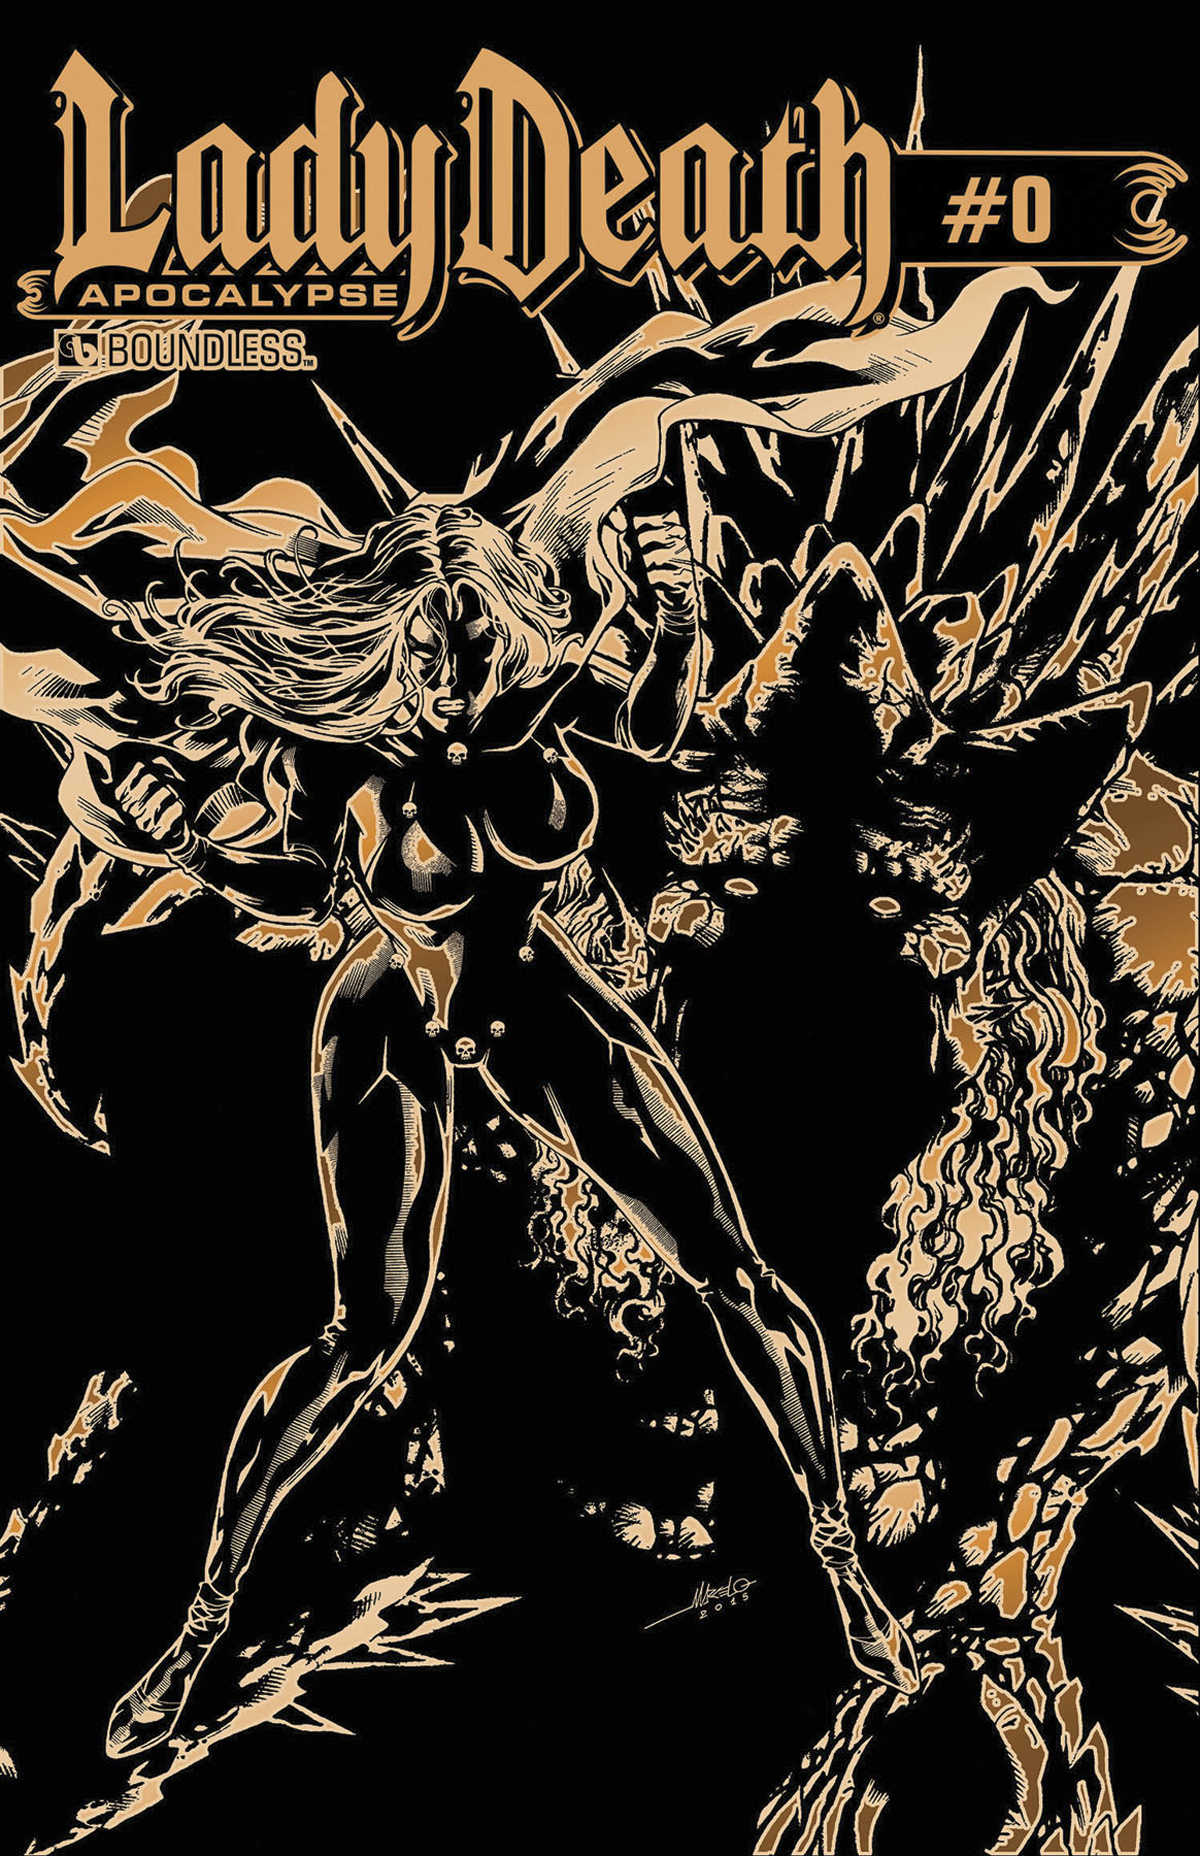 LADY DEATH APOCALYPSE #0 KICKSTARTER GOLD LEATHER CVR